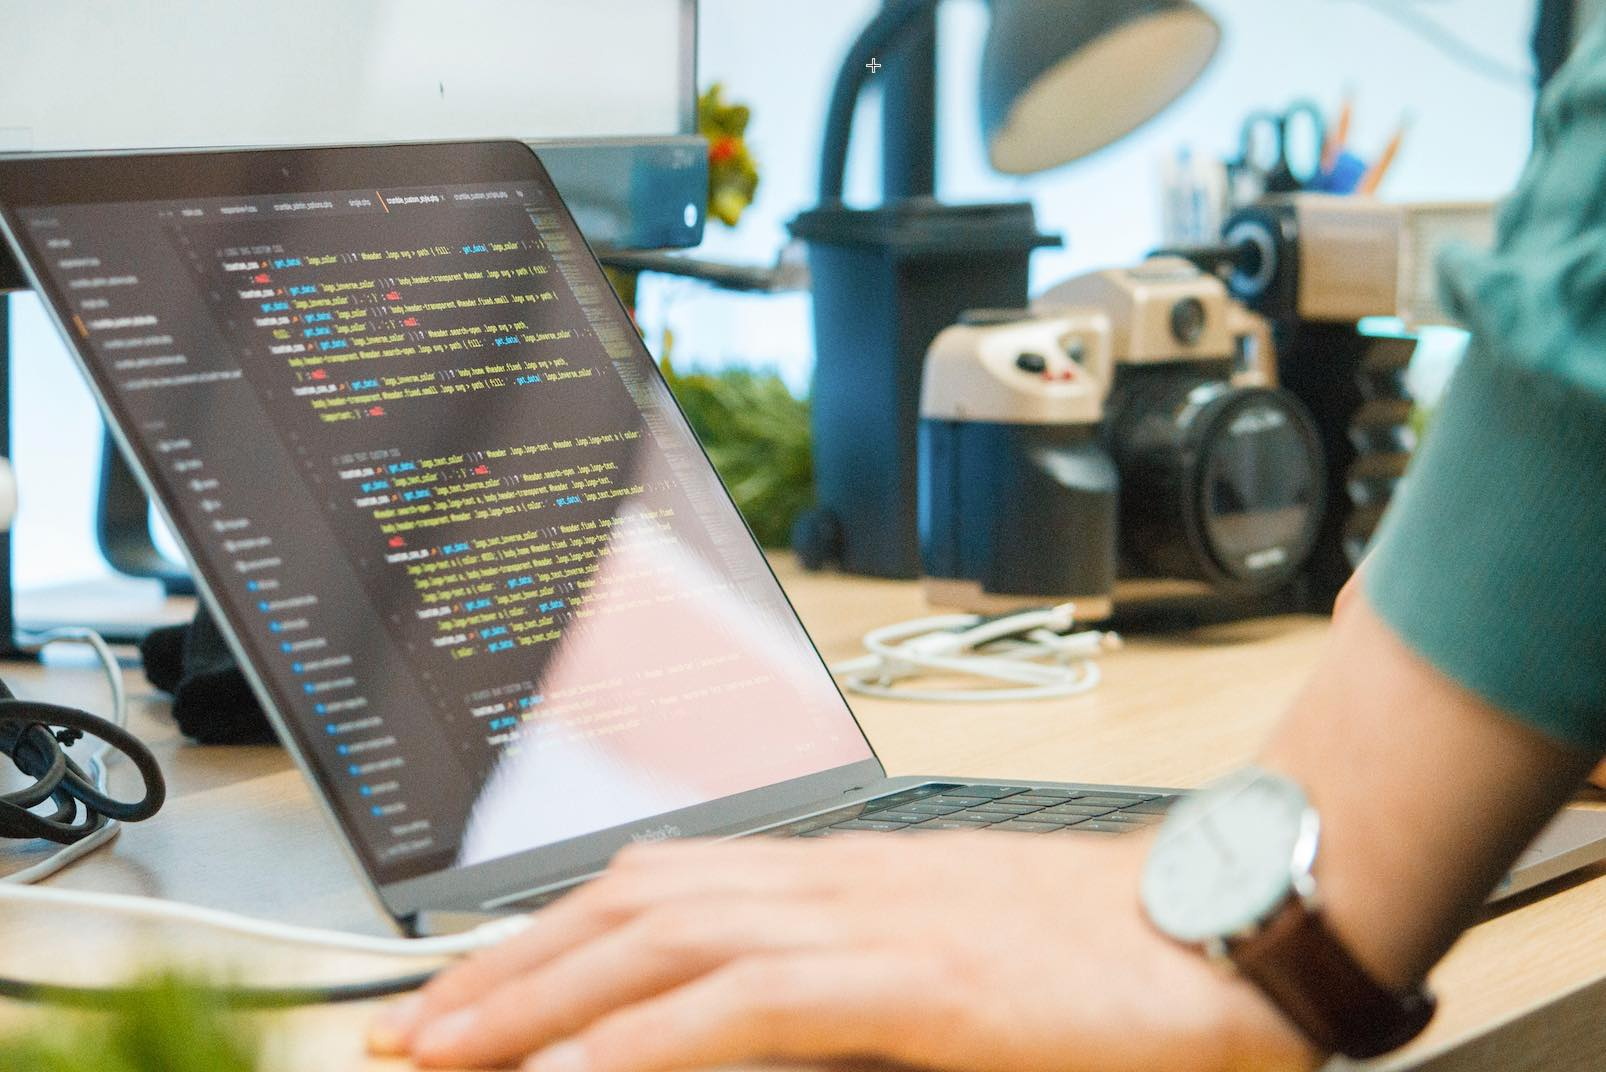 The Rise of DevOps: What DevOps Is And How It Works, And How It Came To Be